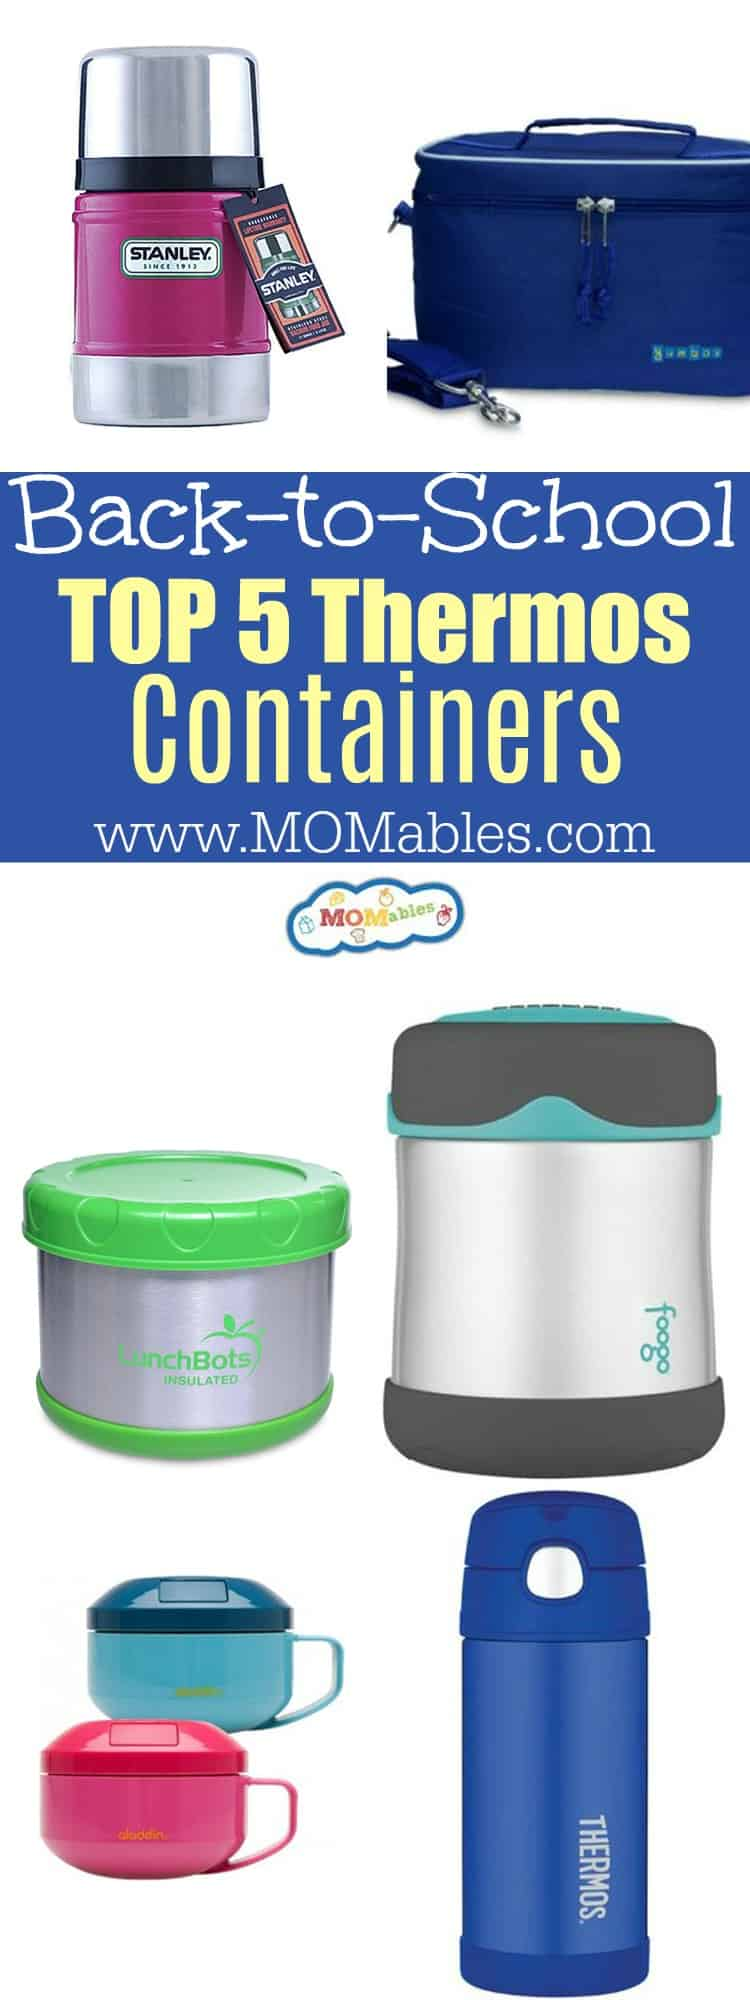 0e76c326fd9e Top 5 Thermos Containers for School Lunches | MOMables